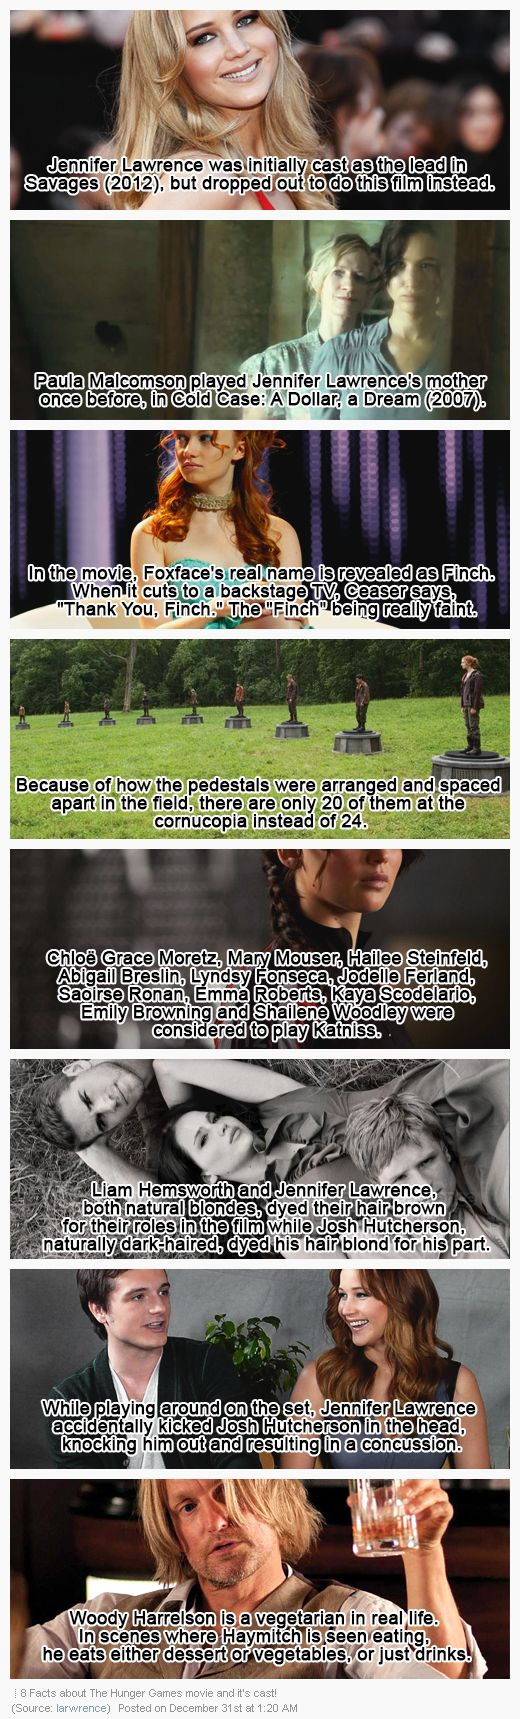 8 Facts about The Hunger Games and its cast!